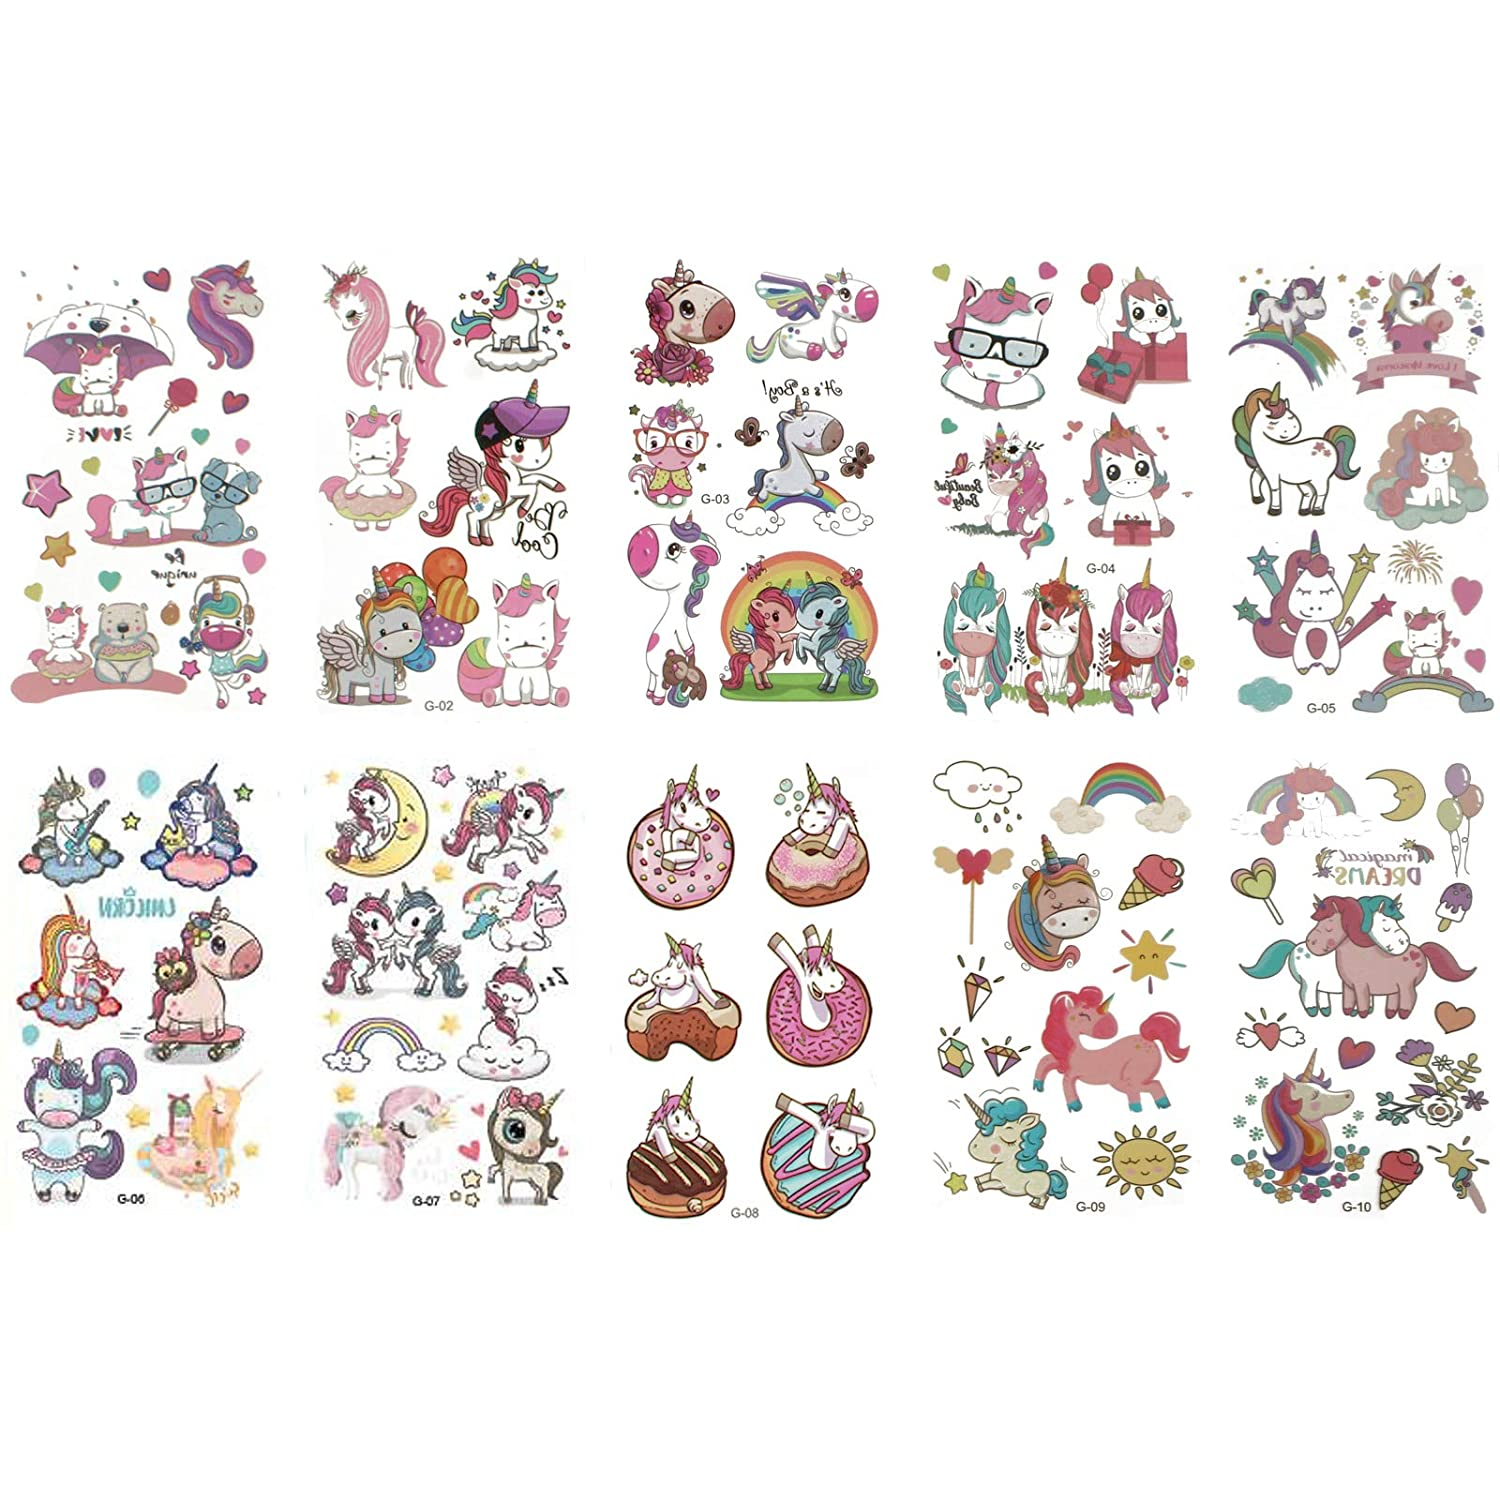 10 pieces / horned horse / cartoon waterproof temporary tattoo stickers for girls